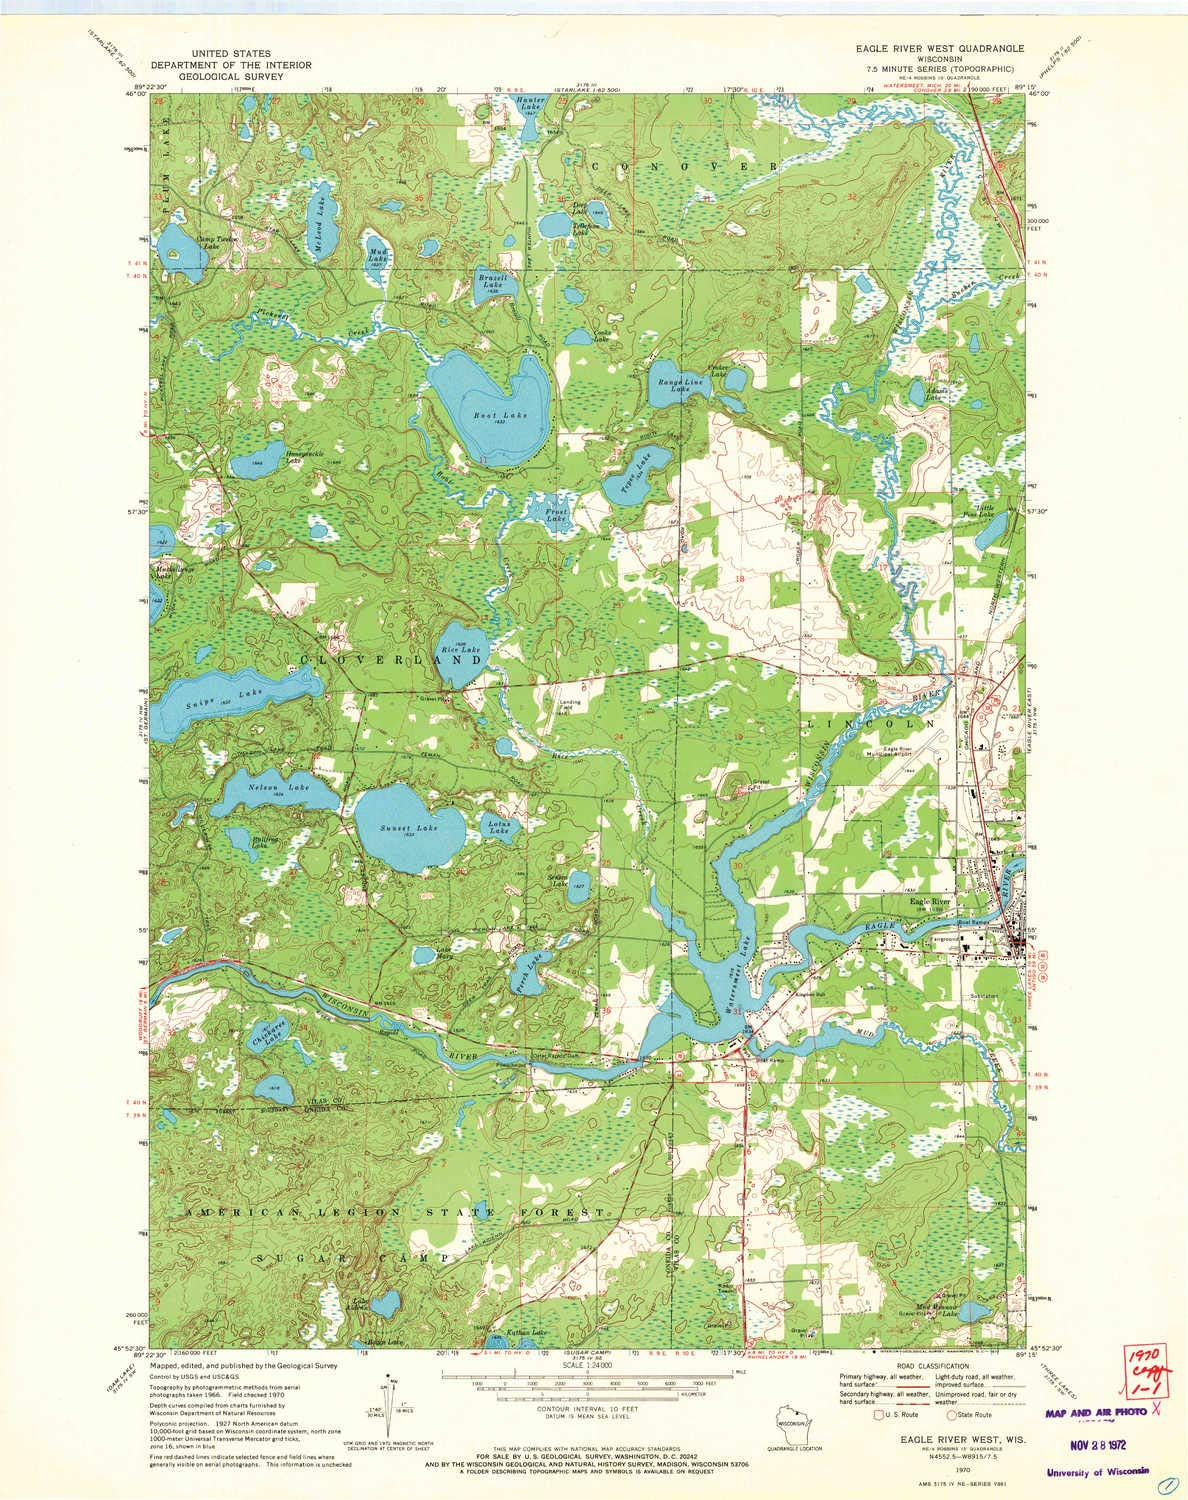 Amazon.com : YellowMaps Eagle River West WI topo map, 1 ... on knik river map, fennimore map, snake river map, chippewa falls map, white river map, kenai map, silver river map, town of eagle wi map, isle royale national park map, wild eagle lodge map, city of racine map, mississippi river map, eagle alaska map, superior map, upper peninsula of michigan map, black river falls map, iron river michigan map, wisconsin river system map, rice lake map, manitowish waters chain of lakes map,